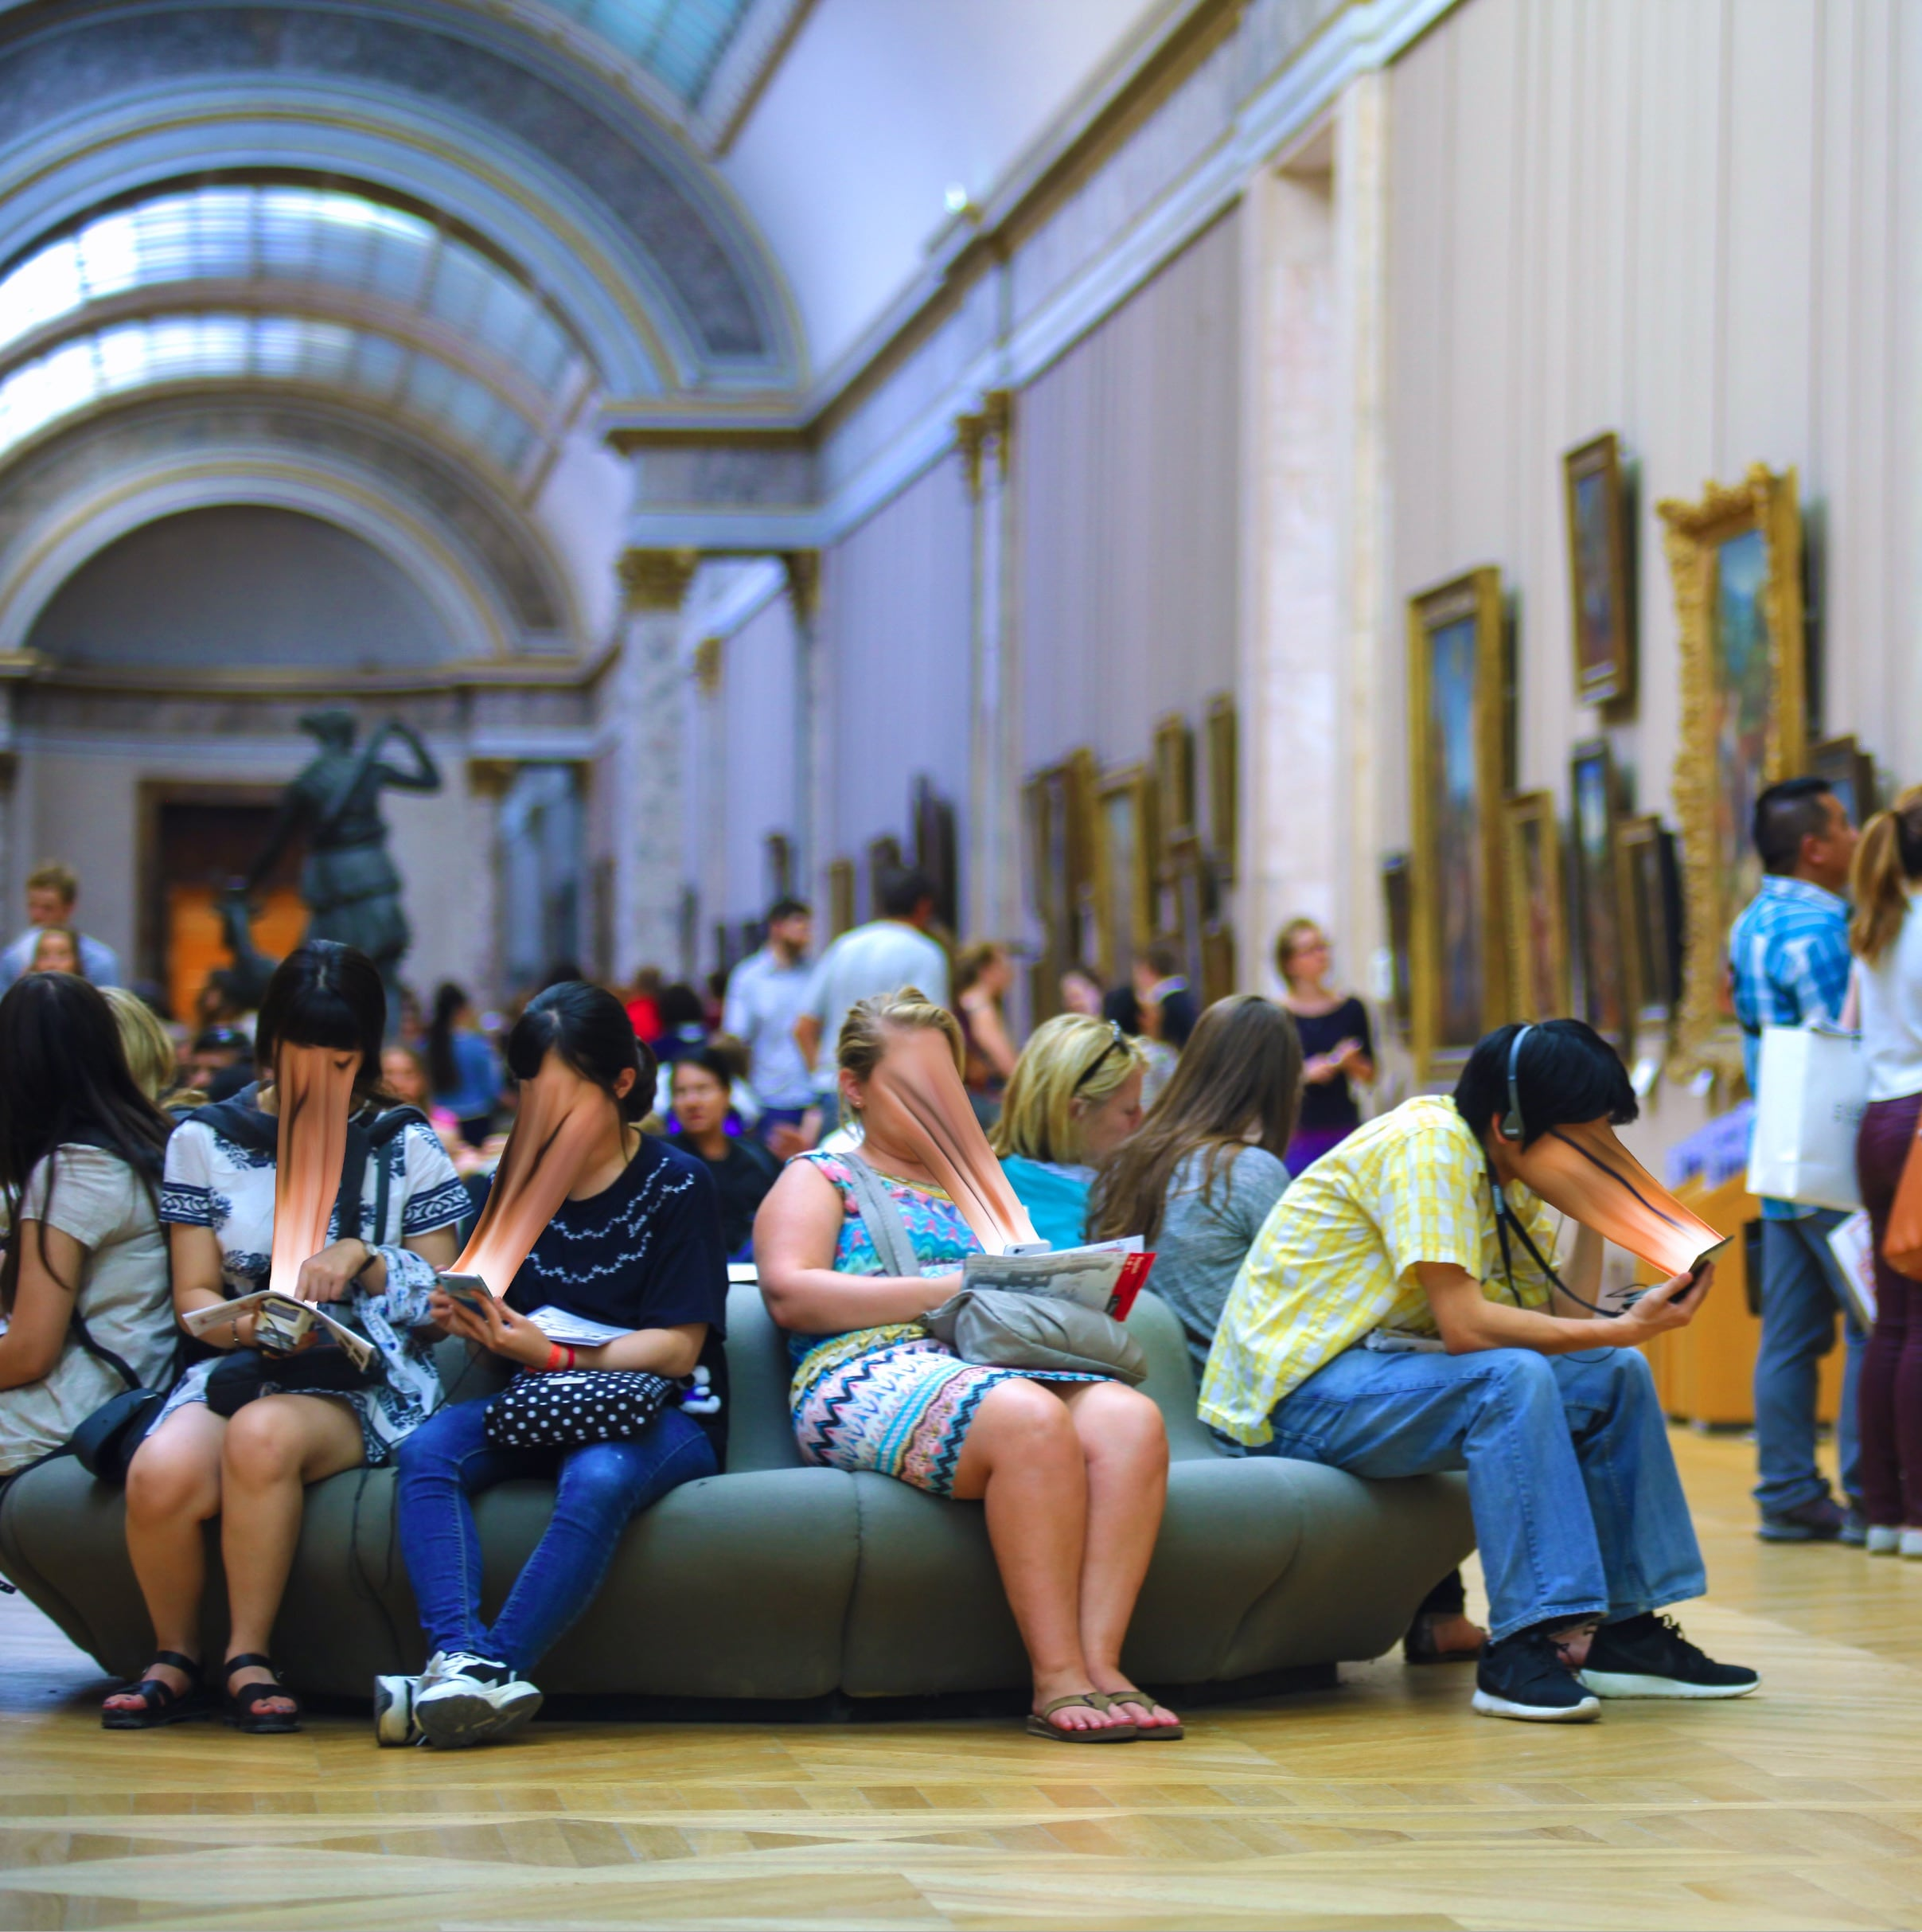 Museum-goers are sucked into their screens